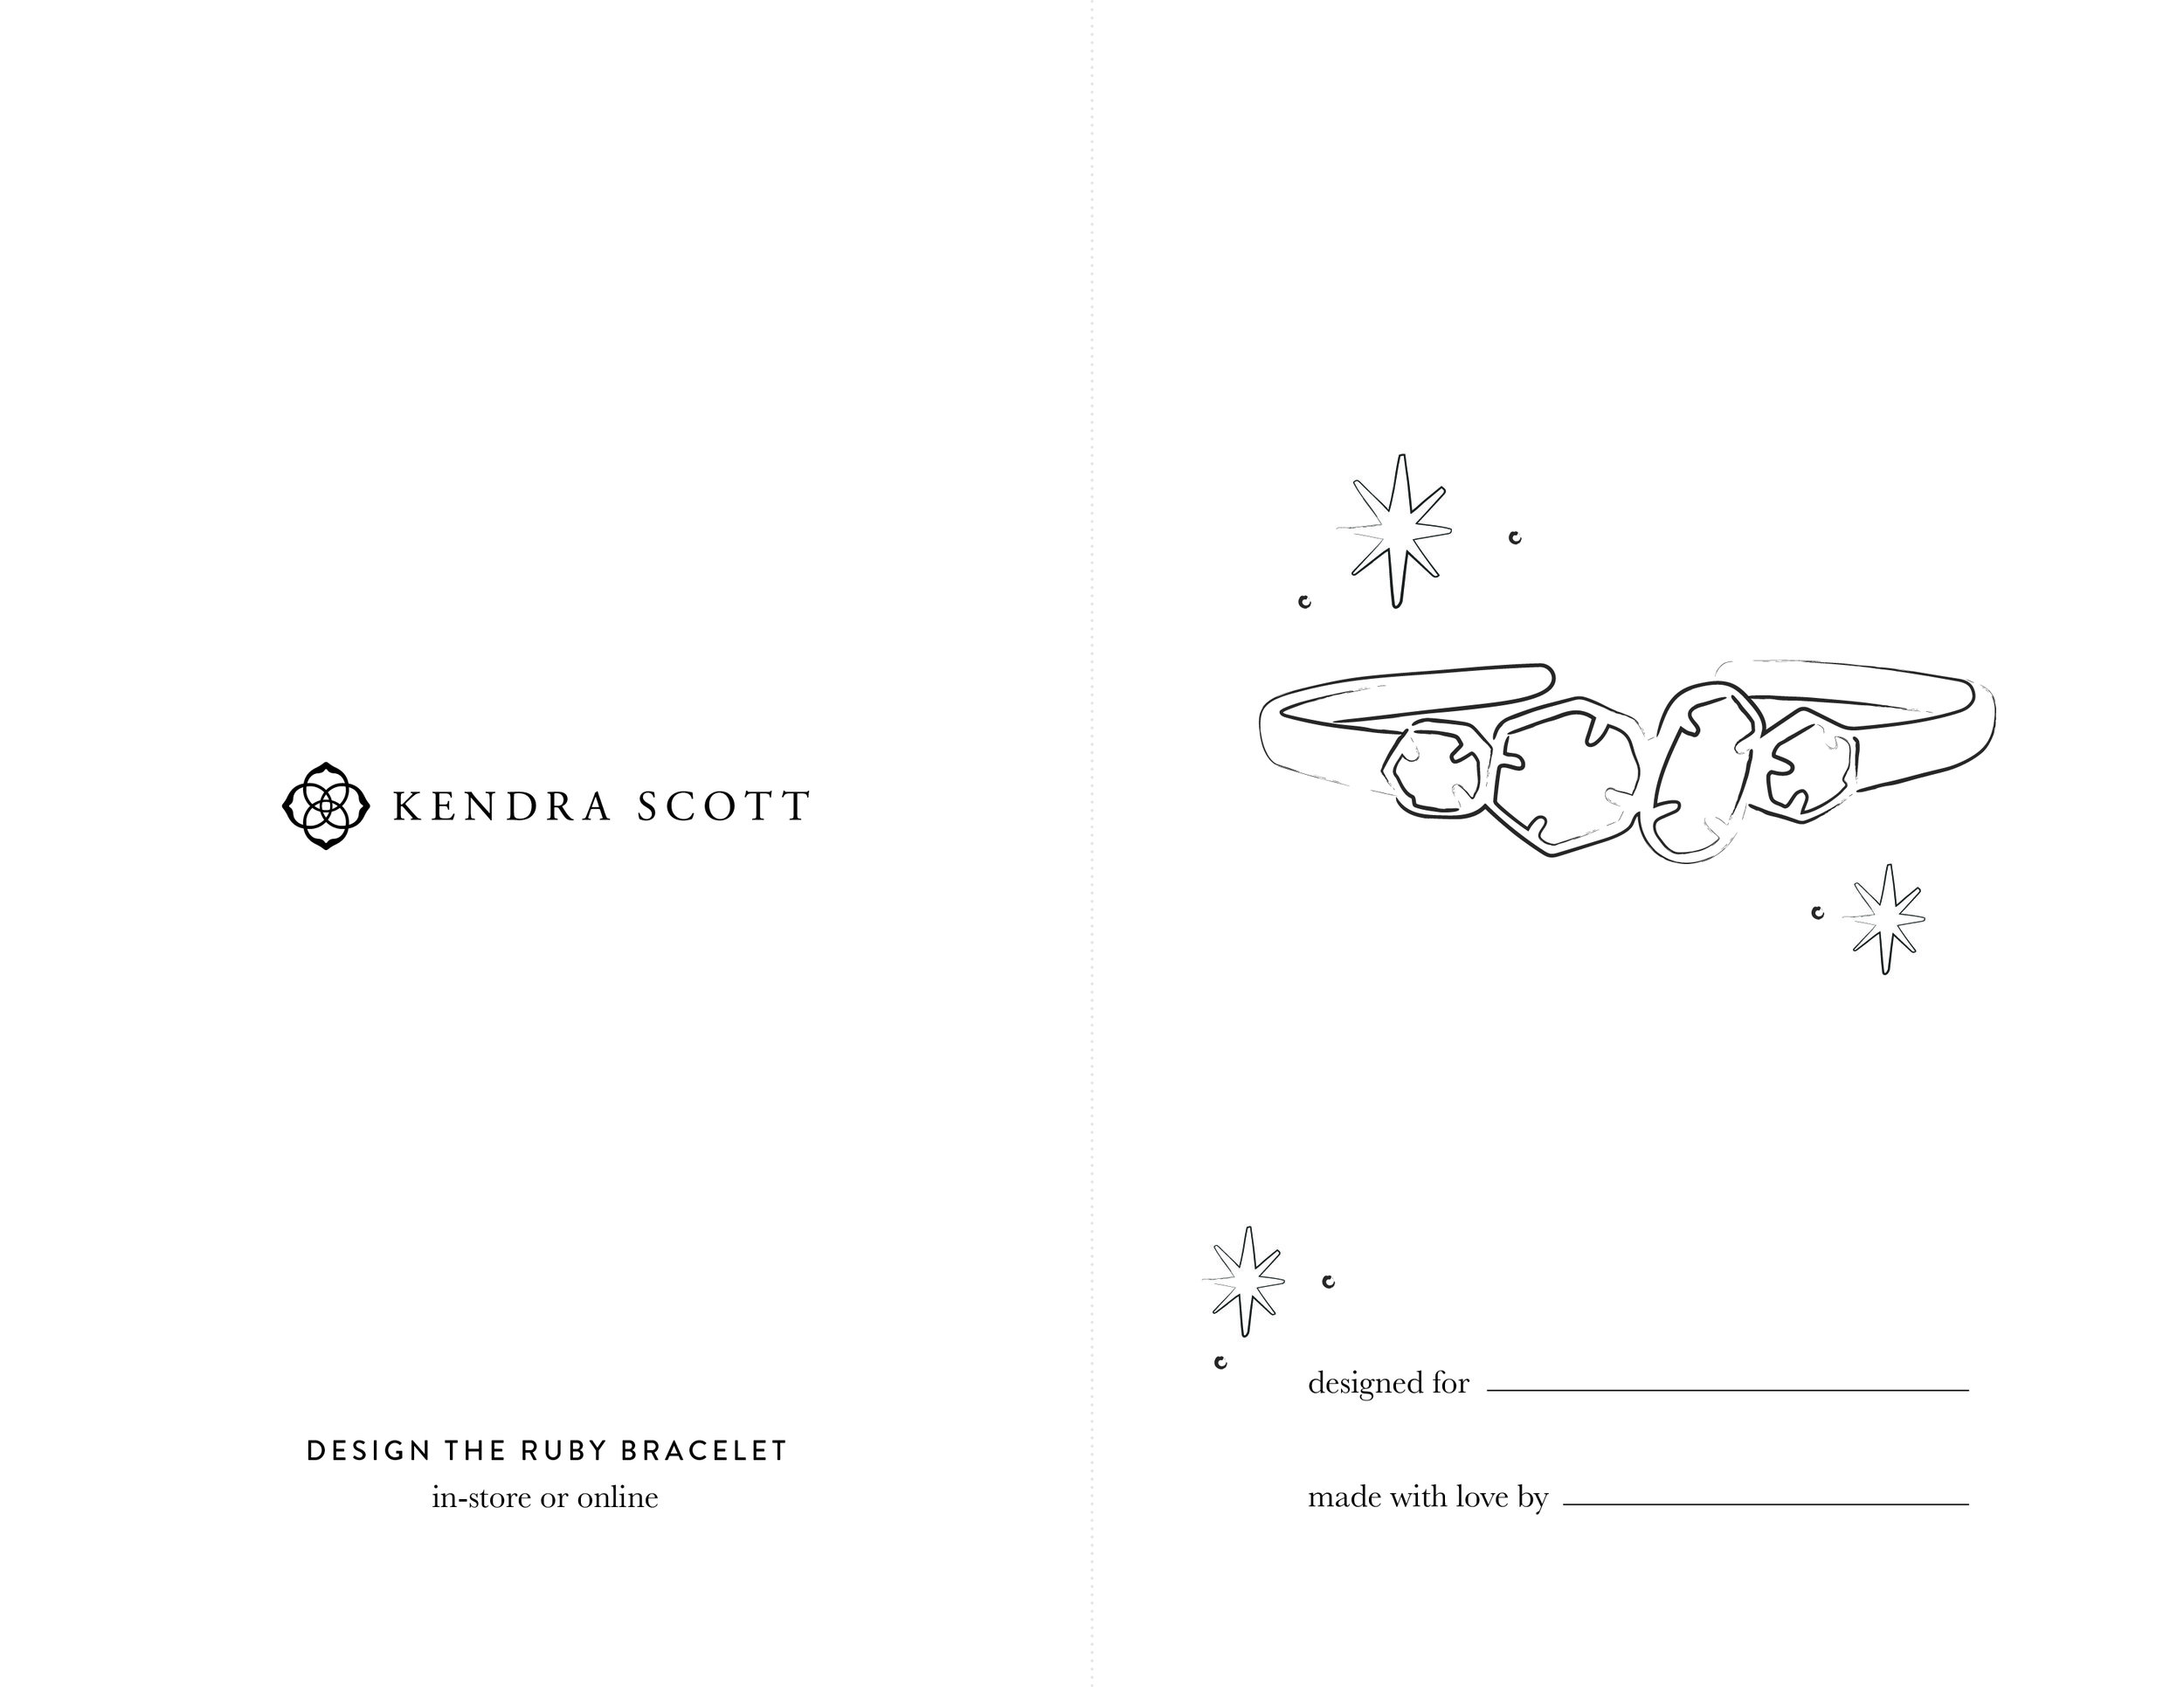 Kendra-Scott-Coloring-Sheets-01.jpg